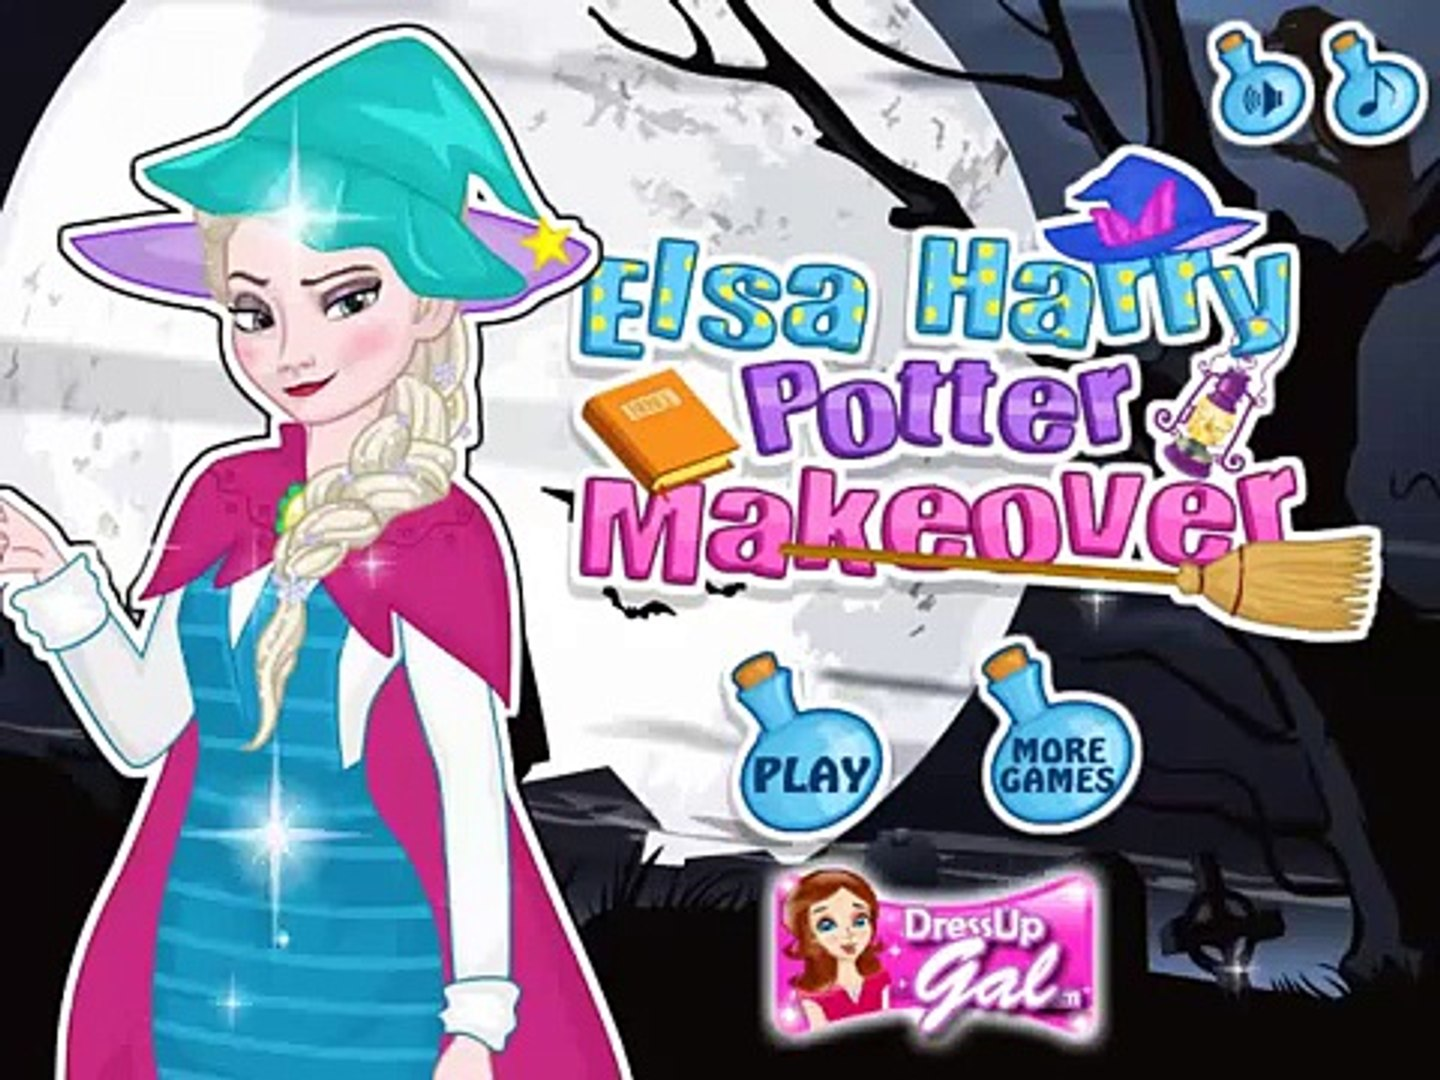 Elsa harry potter make over game , fun game play for kids , super game for kids , best game for kids